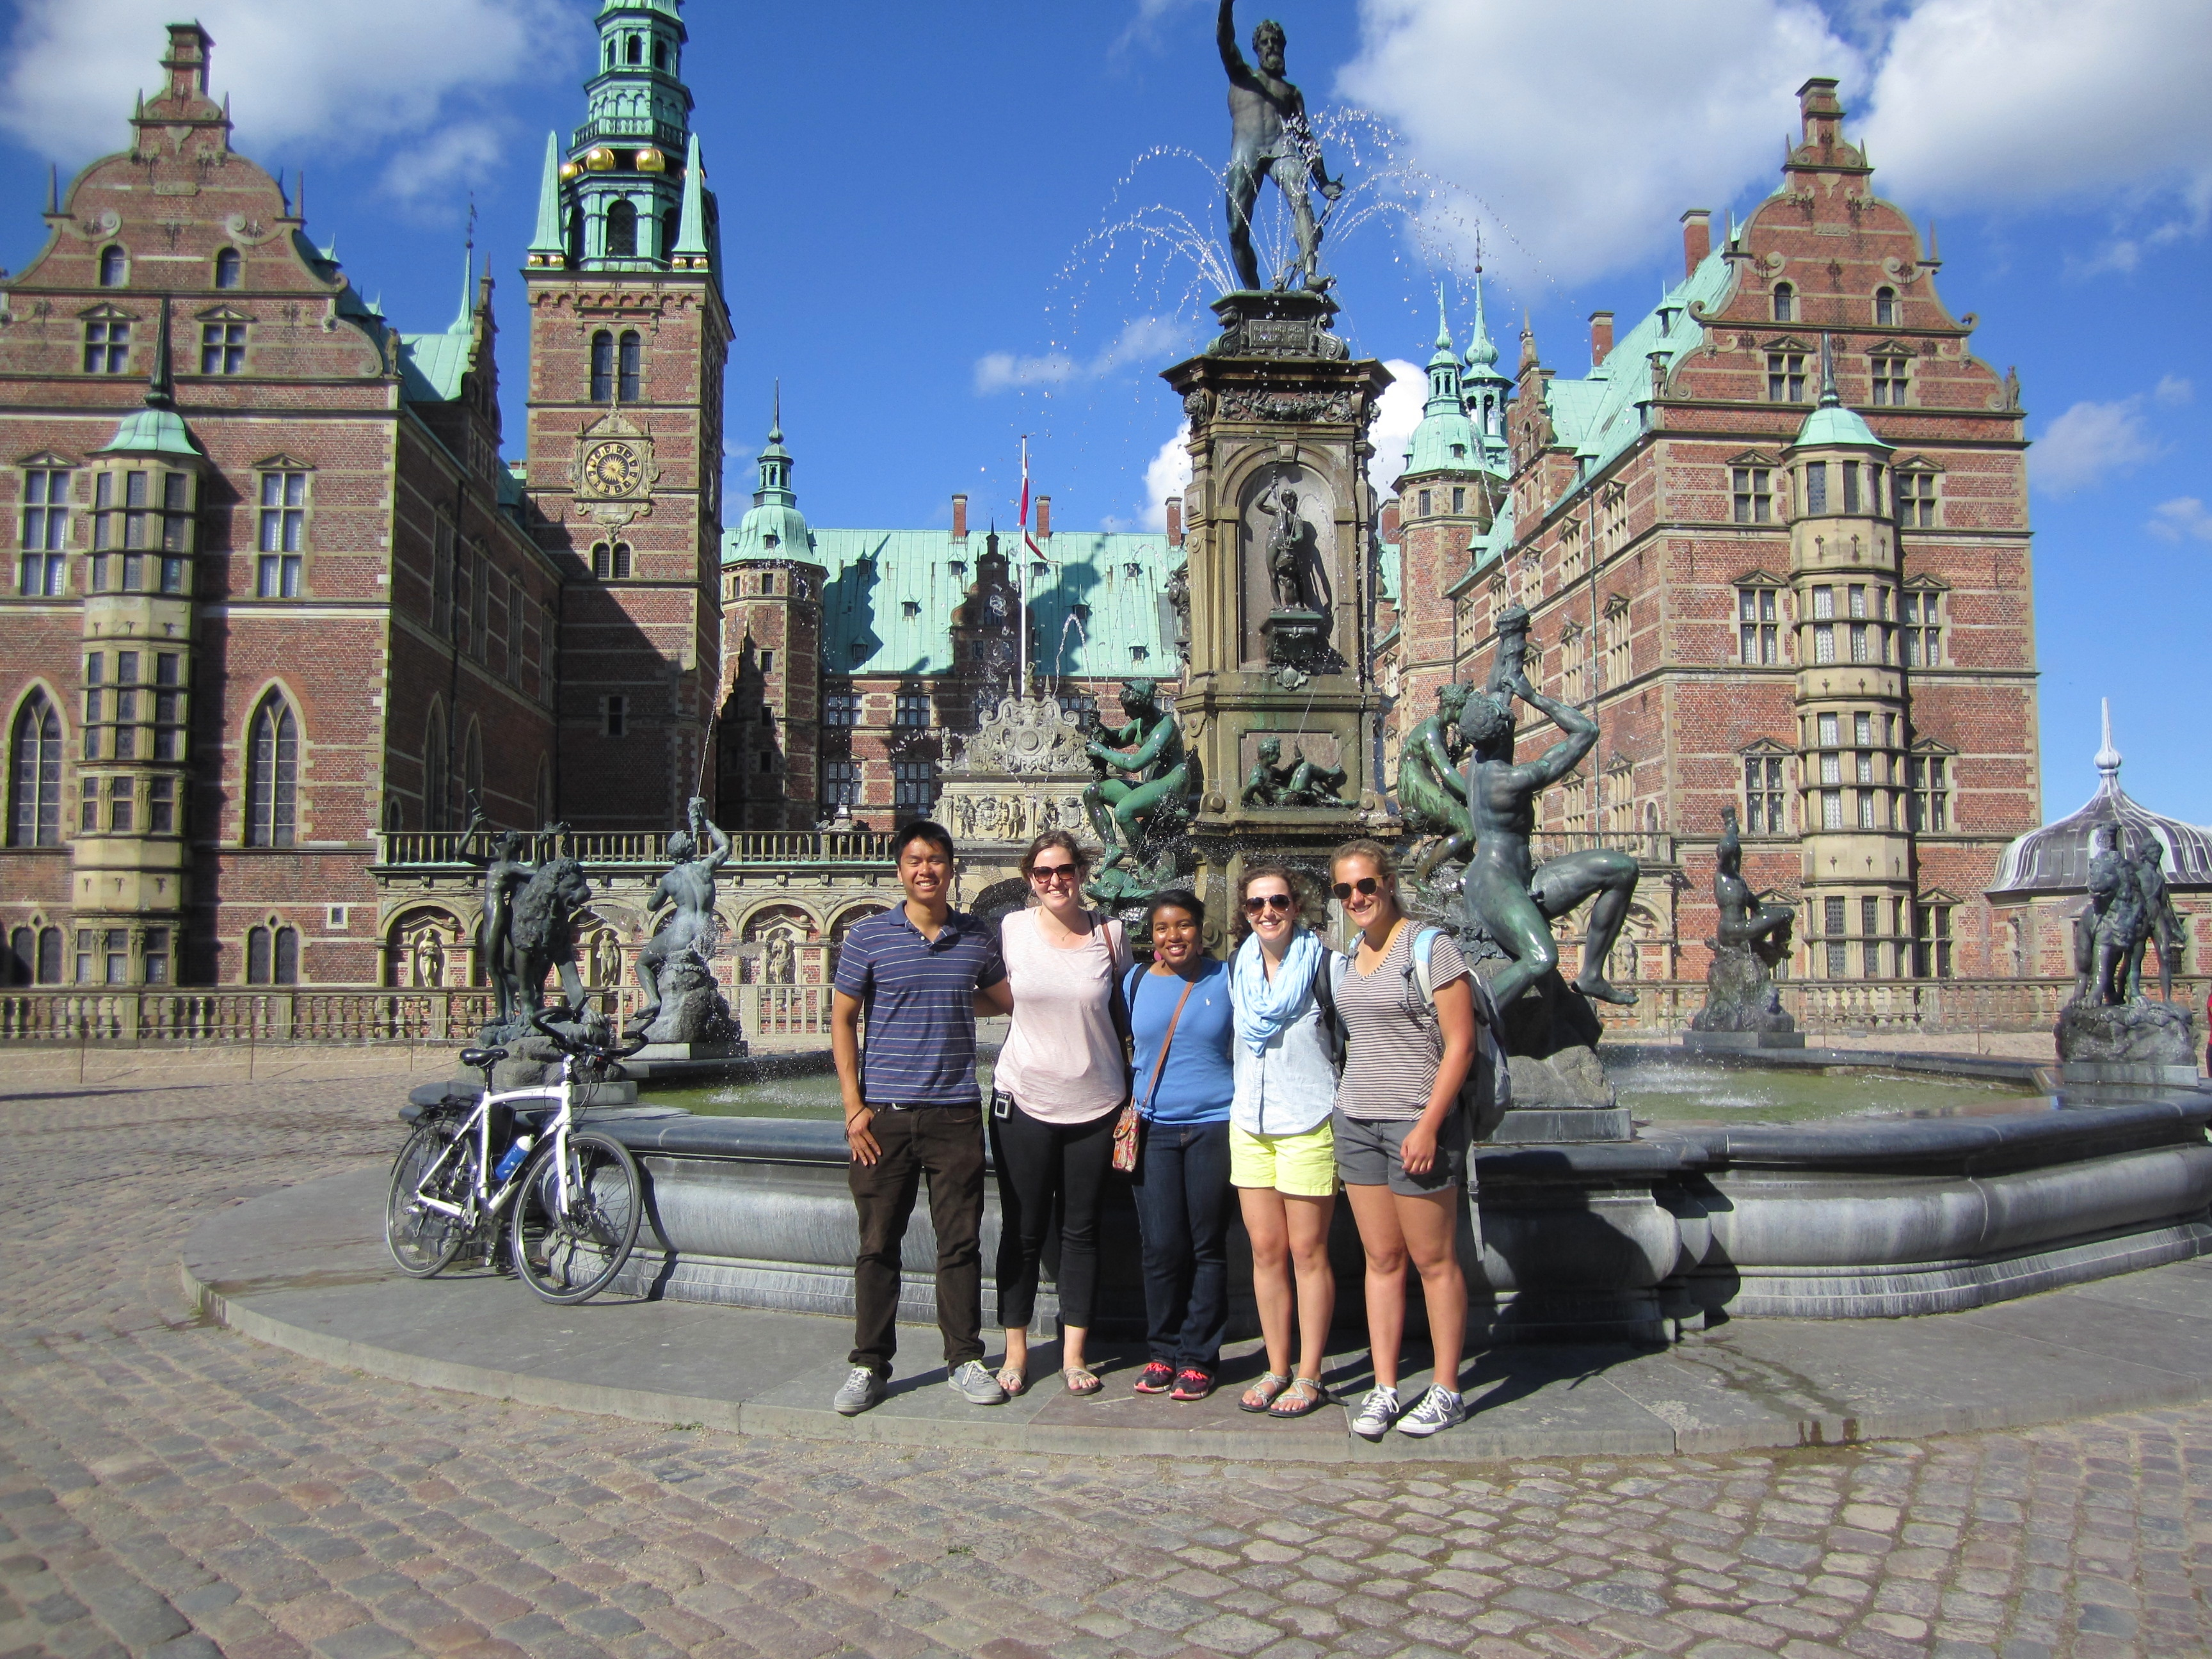 the challenges of studying abroad Studying abroad can be one of the most exciting experiences of your life it is important to remember that though there may be challenges along the way, with the right strategies and mindset, you can overcome them.